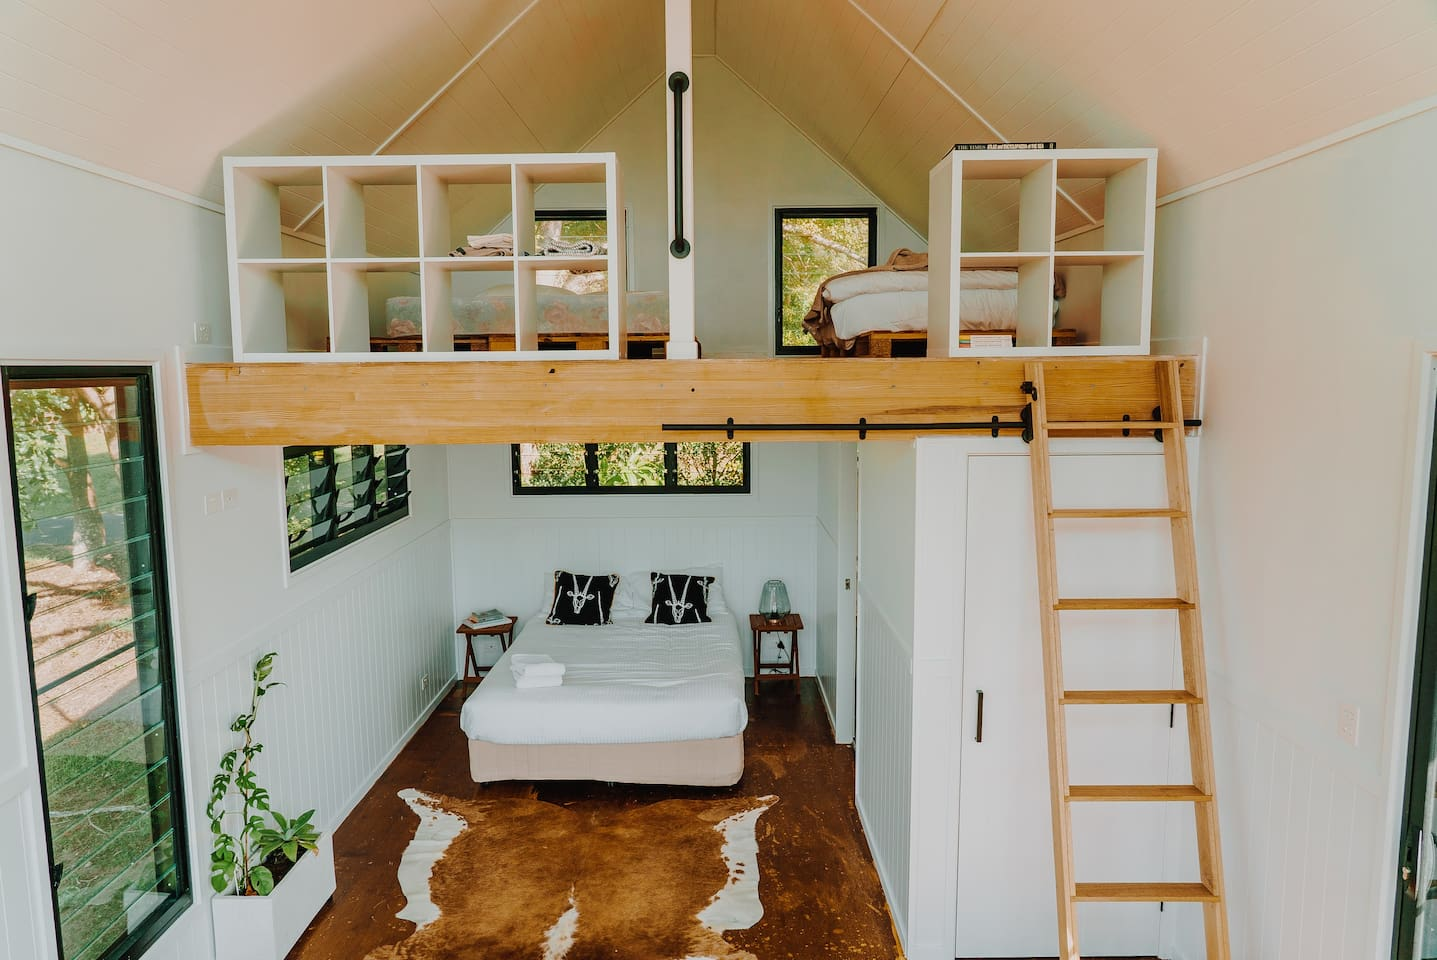 looking into a bedroom with a loft area over the bed